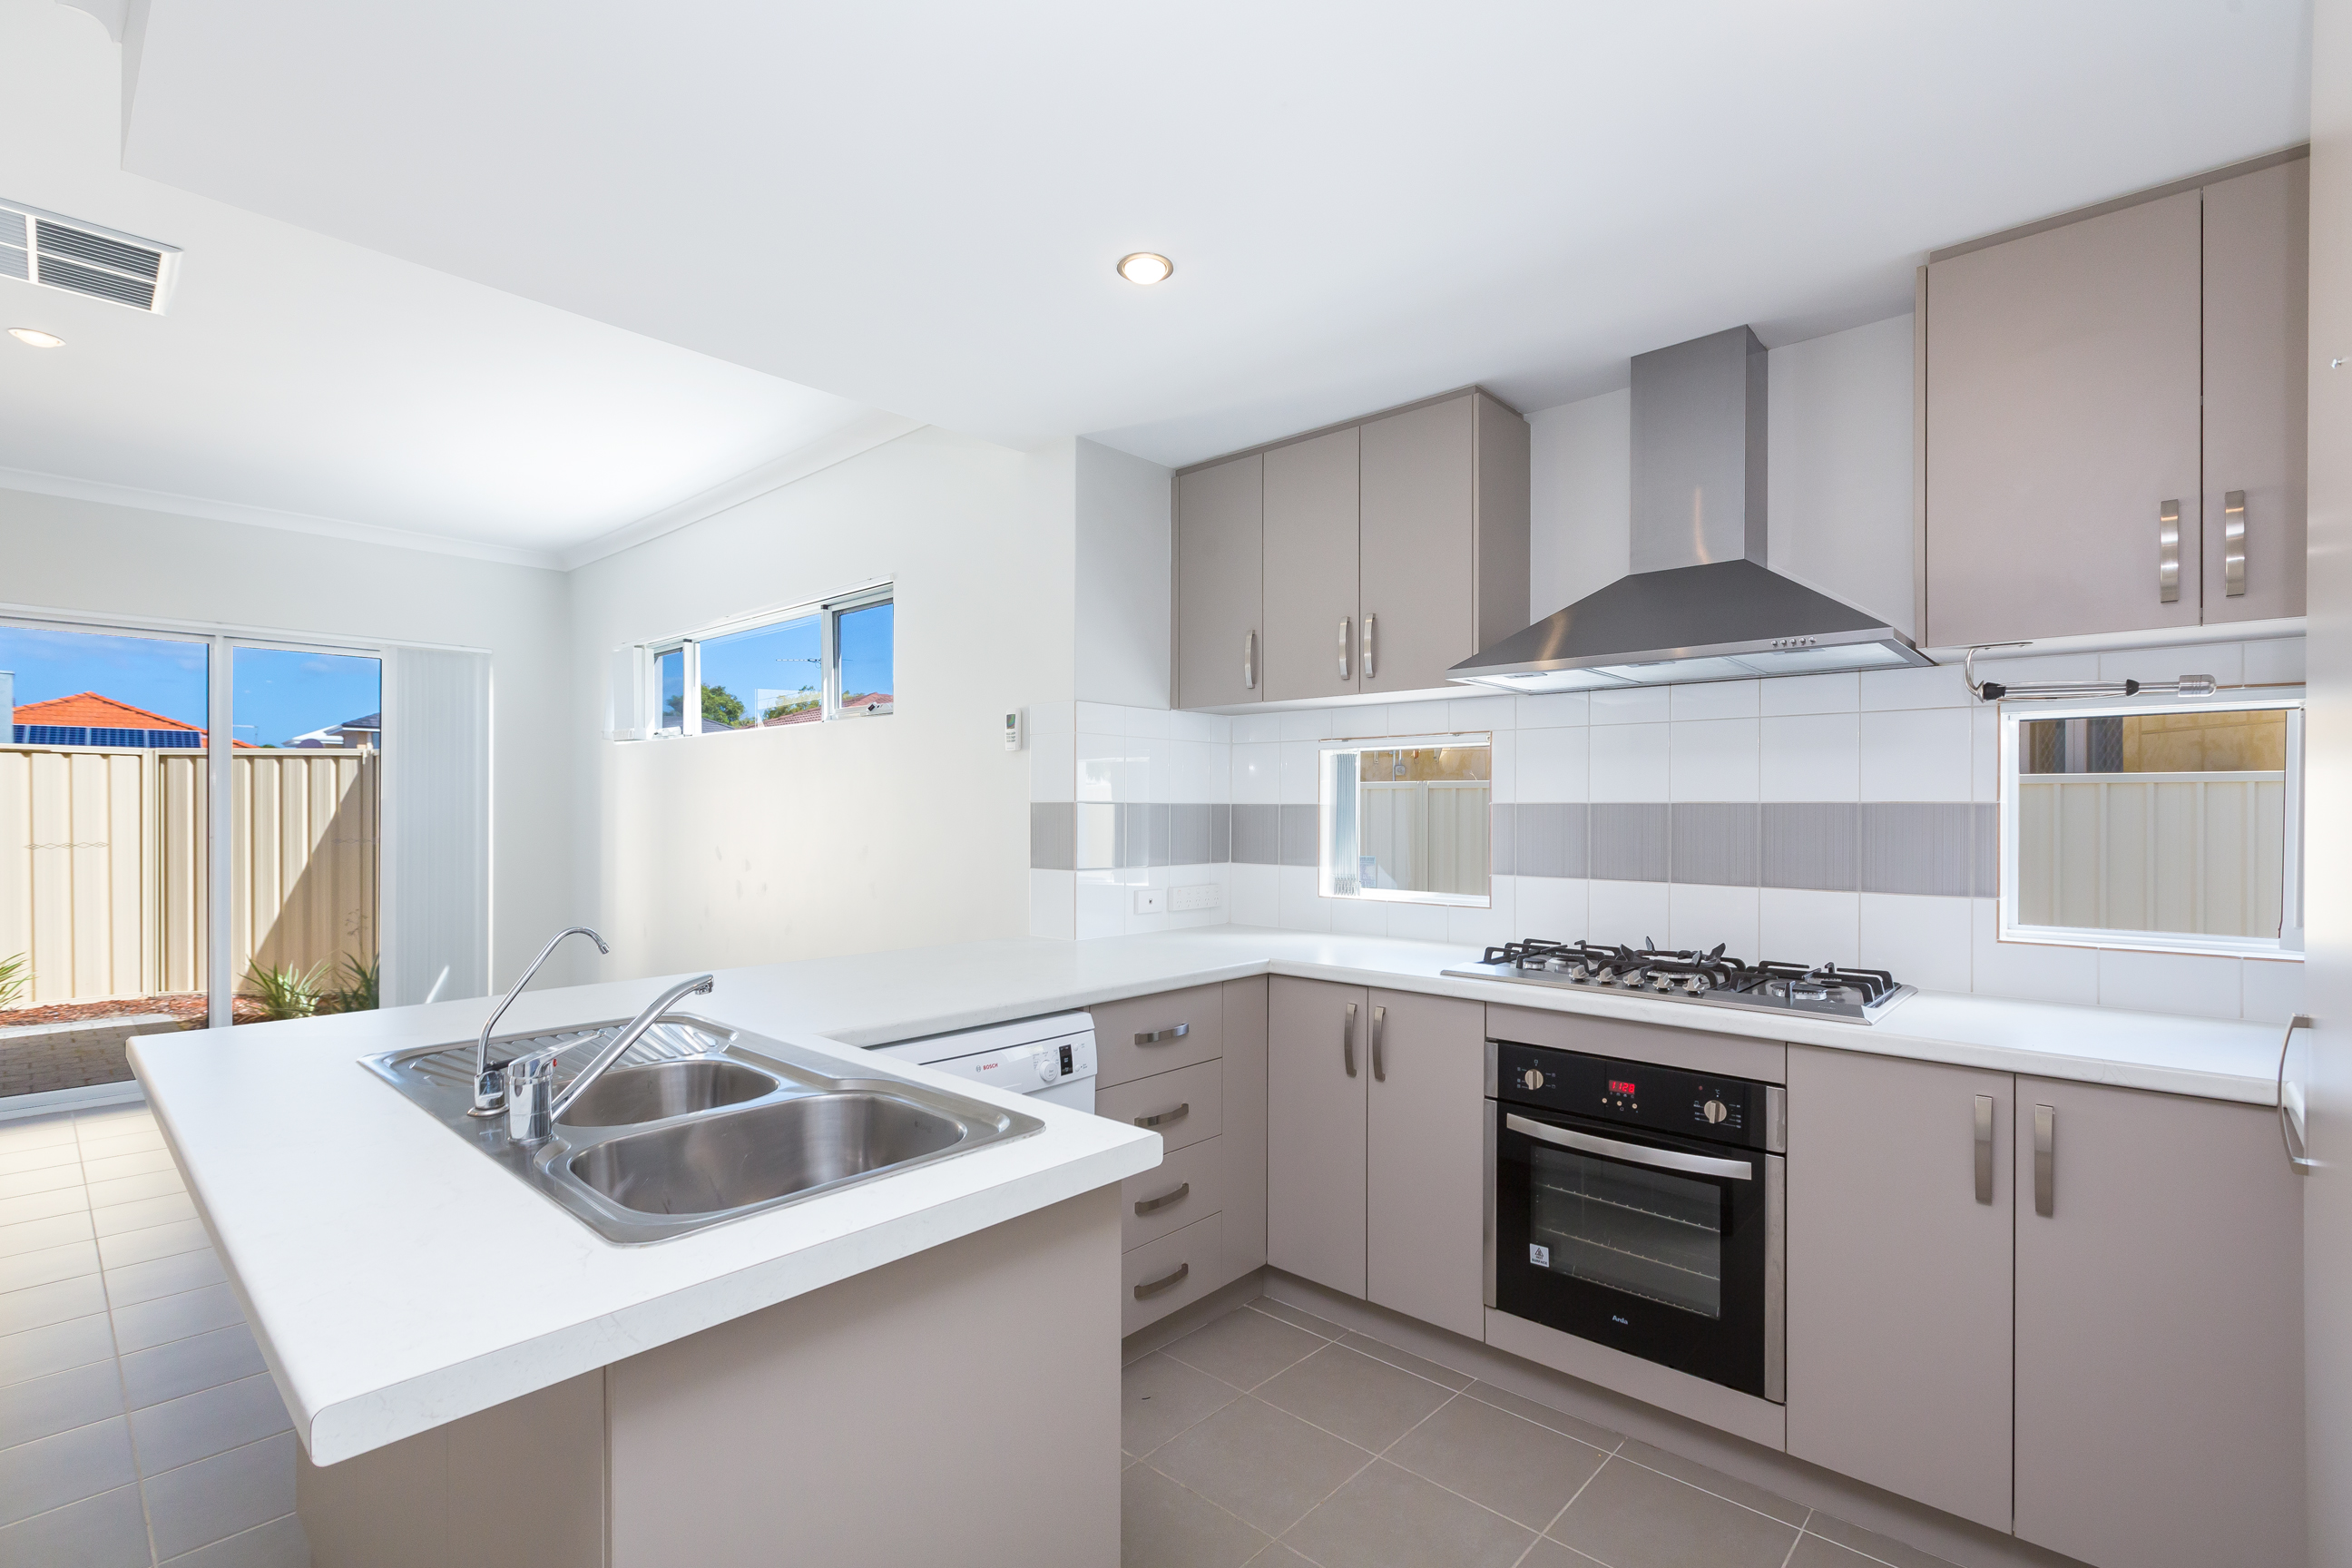 Property for sale in DIANELLA, 355B Lennard Street : Attree Real Estate